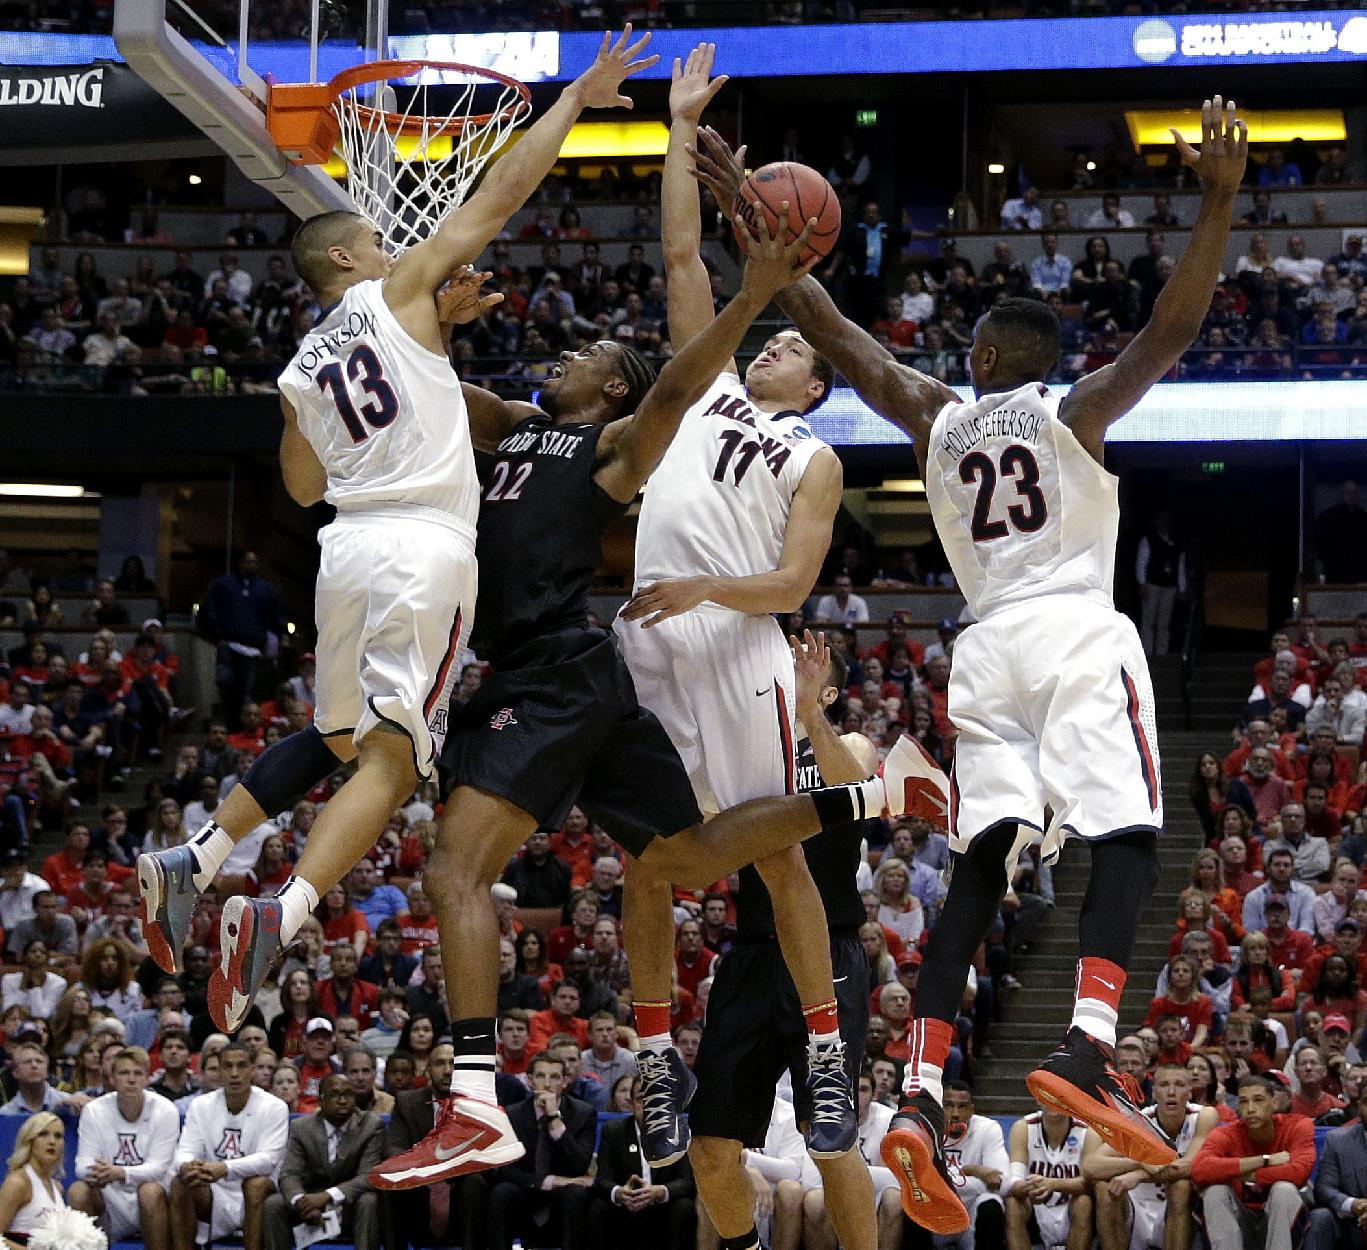 San Diego State forward Josh Davis (22) shoots between Arizona guard Nick Johnson (13), Aaron Gordon (11) and Rondae Hollis-Jefferson (23) during the first half in a regional semifinal of the NCAA men's college basketball tournament, Thursday, March 27, 2014, in Anaheim, Calif